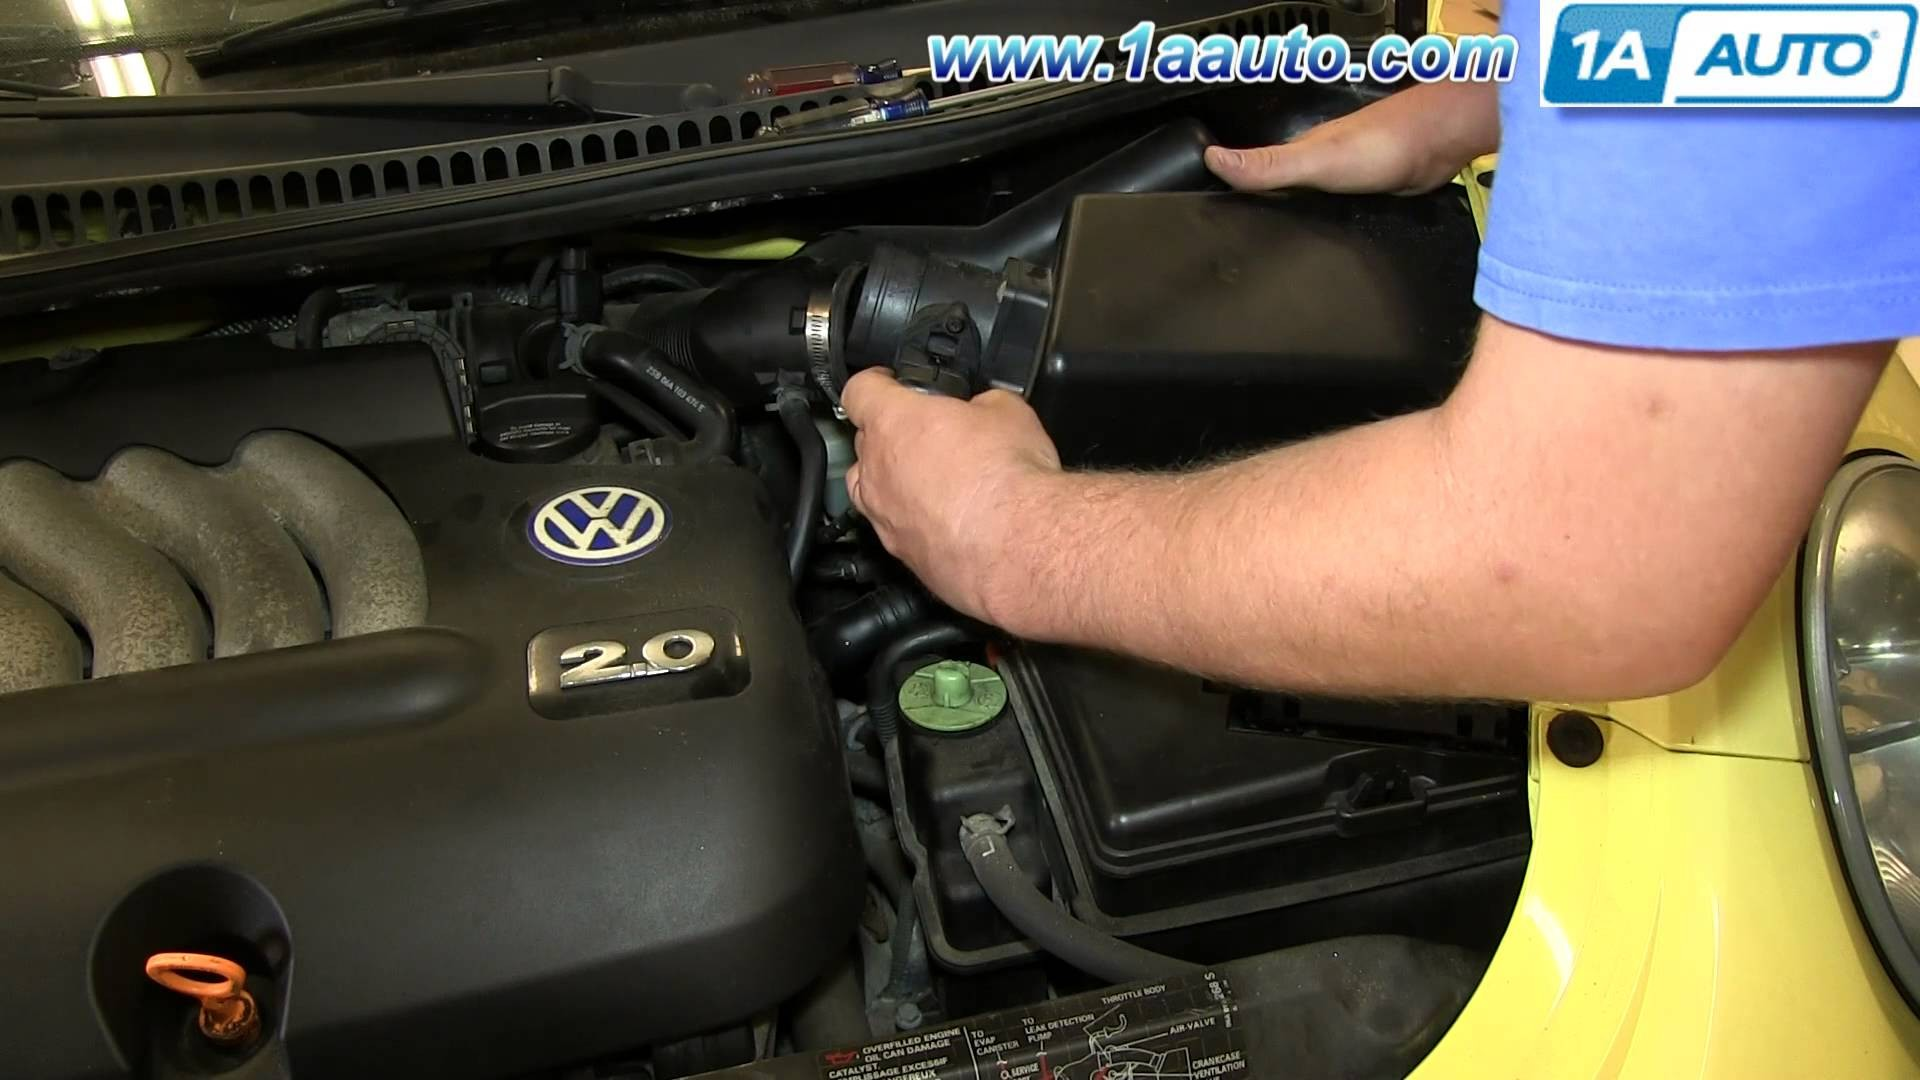 2001 Vw Beetle Turbo Engine Diagram How to Install Replace Engine Air Filter 1998 10 Vw Volkswagen Of 2001 Vw Beetle Turbo Engine Diagram